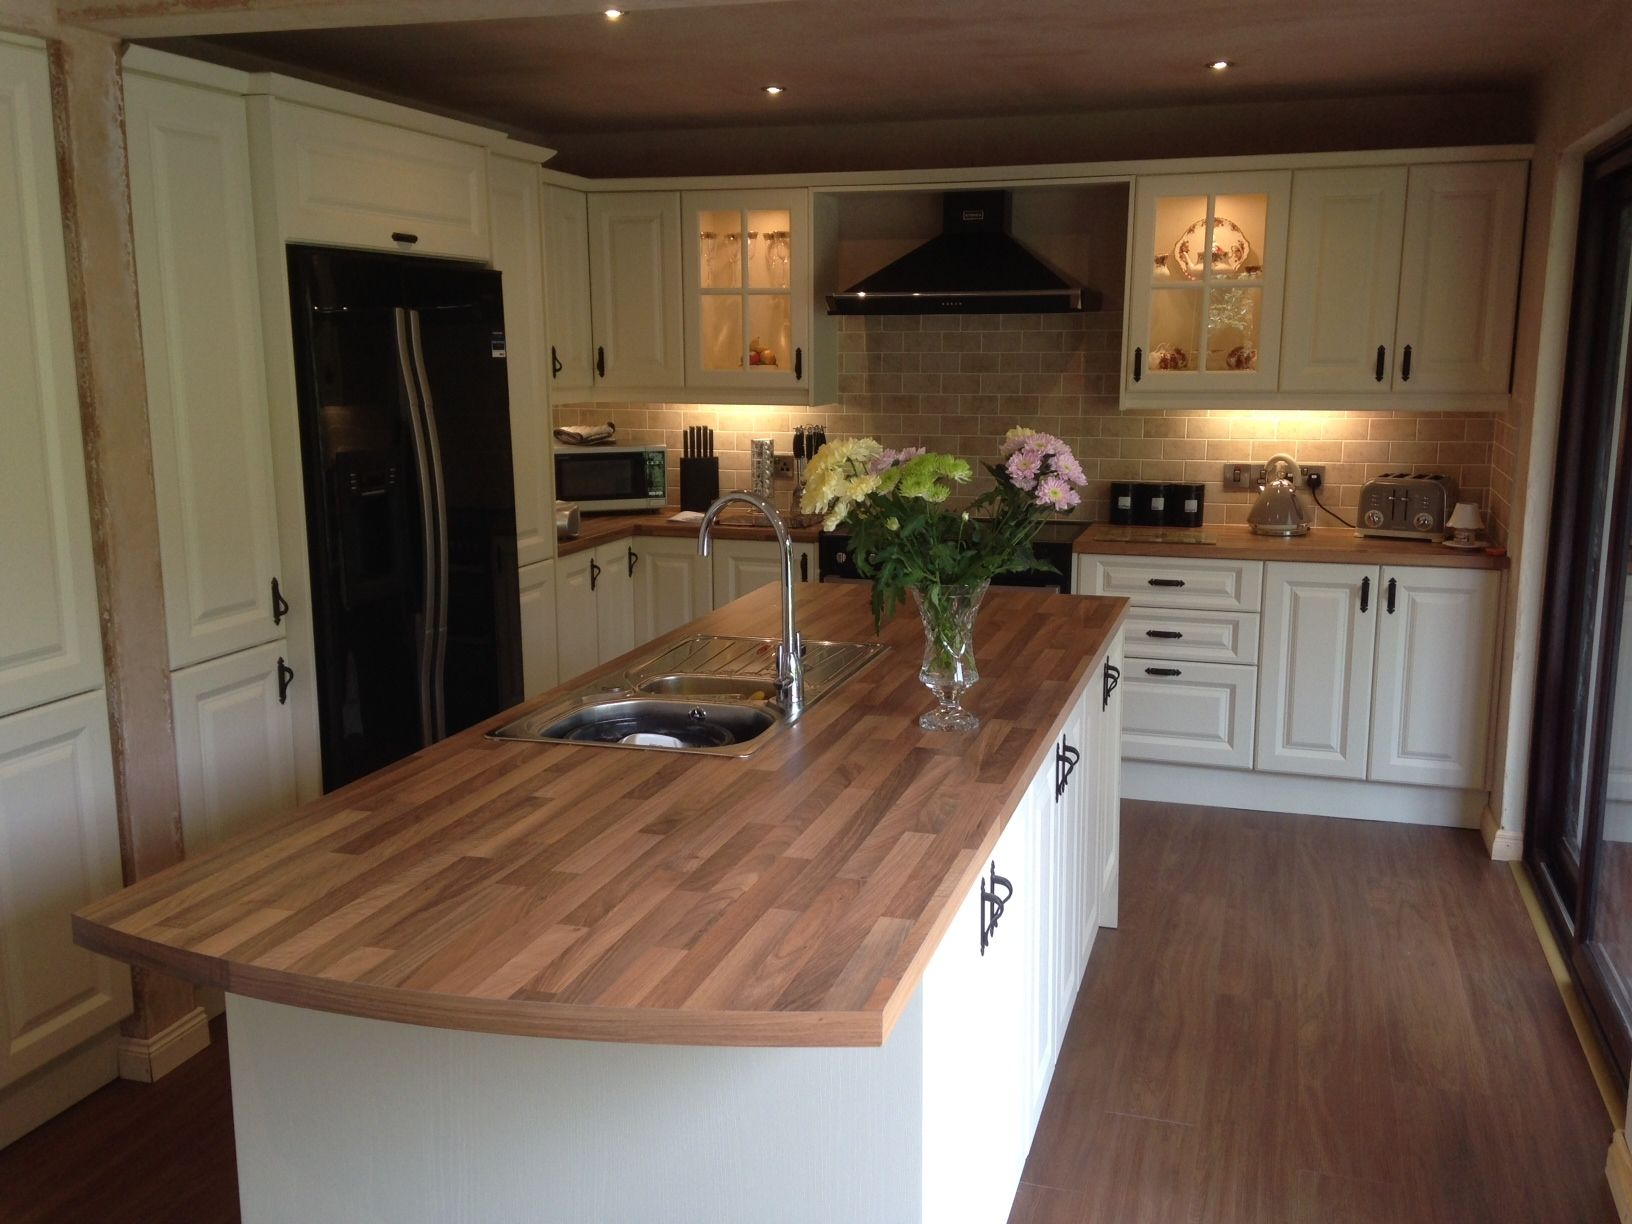 Kitchens Direct NI Customer Kitchen July 2014 With Rangemaster Cooker And Pyramid Extractor Flooring Is